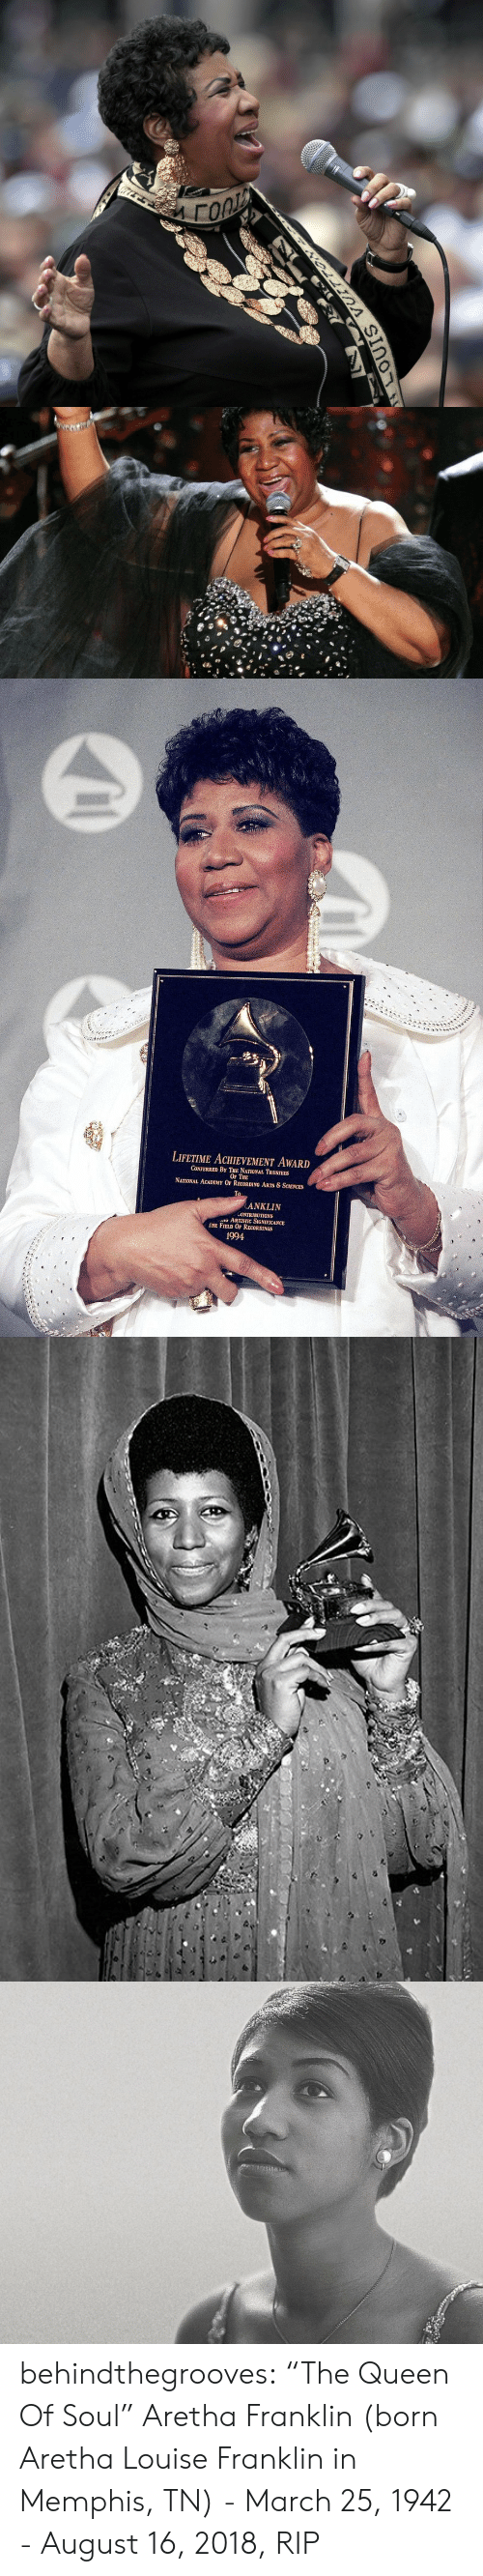 "Aretha Franklin: LIFETIME ACHEVEMENT AWARD  CONFERRED BY THE NATIONAL TRUSTEES  OF THE  NATIONAL ACADEMY OF RECORDING ARTS & SCIENCES  ANKLIN  ONTRIBUTIONS  ARTISTIC SIGNIFICANCE  HE FIELD OF RECORDINGS  1994 behindthegrooves:    ""The Queen Of Soul"" Aretha Franklin (born Aretha Louise Franklin in Memphis, TN) - March 25, 1942 - August 16, 2018, RIP"